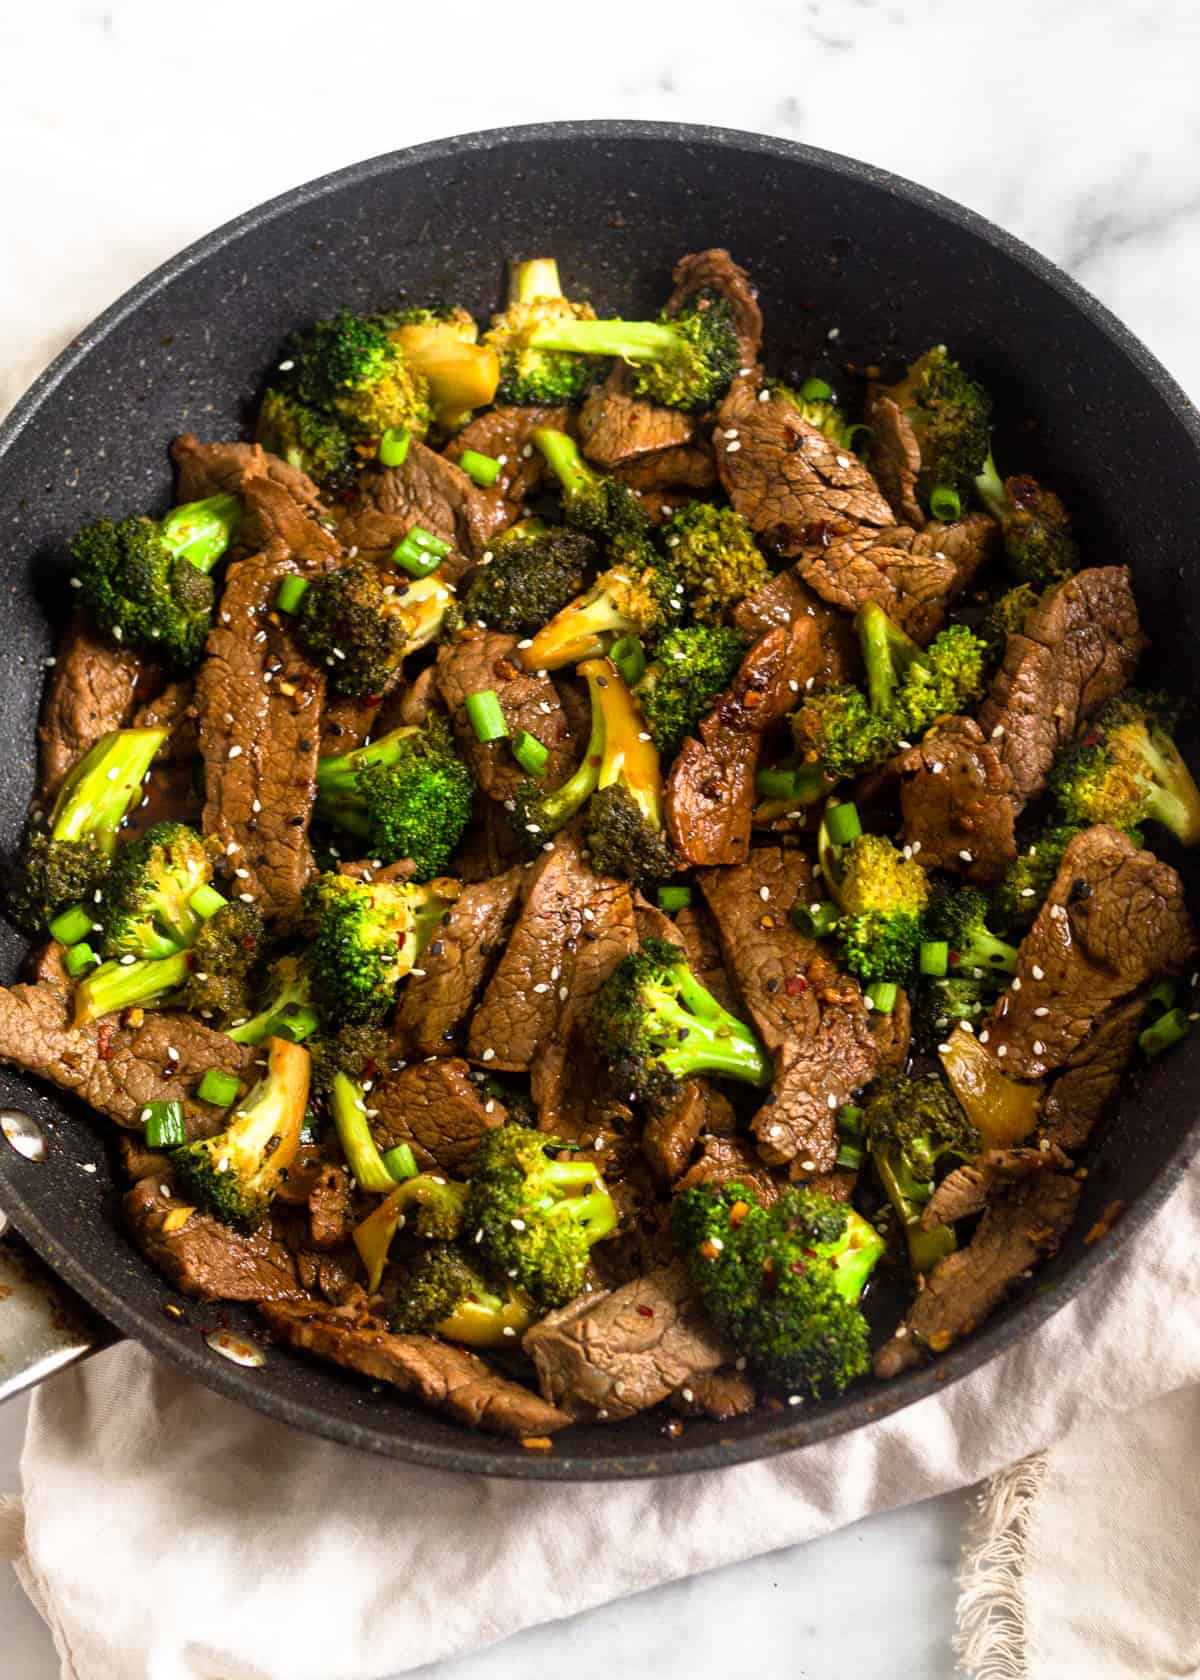 Large saute pan filled with whole30 and paleo beef & broccoli stir fry sitting on a white linen